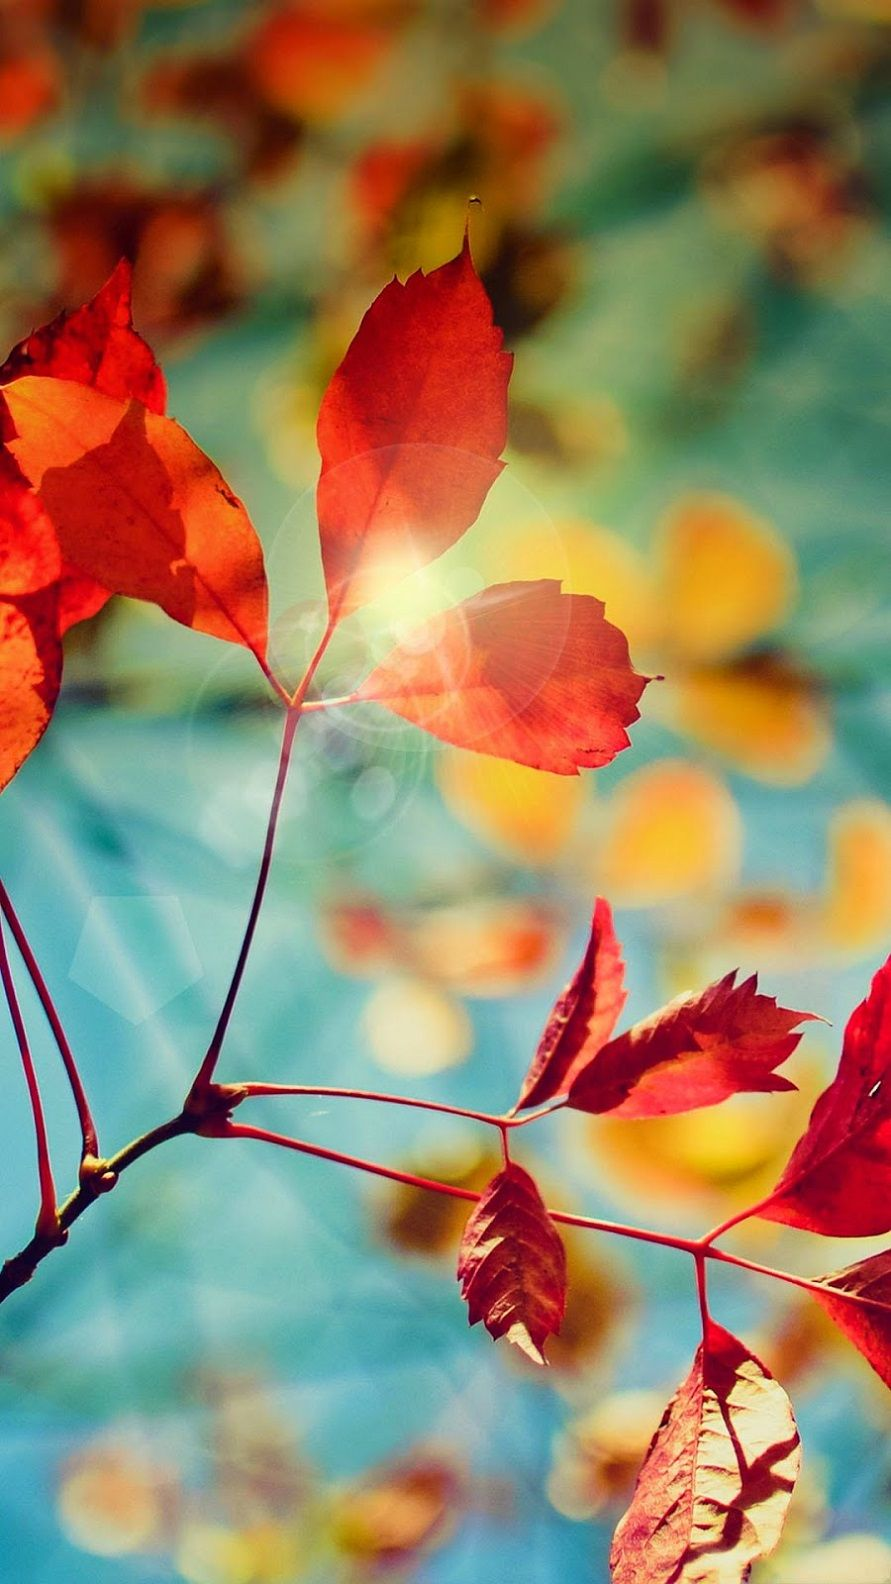 Autumn Leaves HD Wallpaper Android Phone